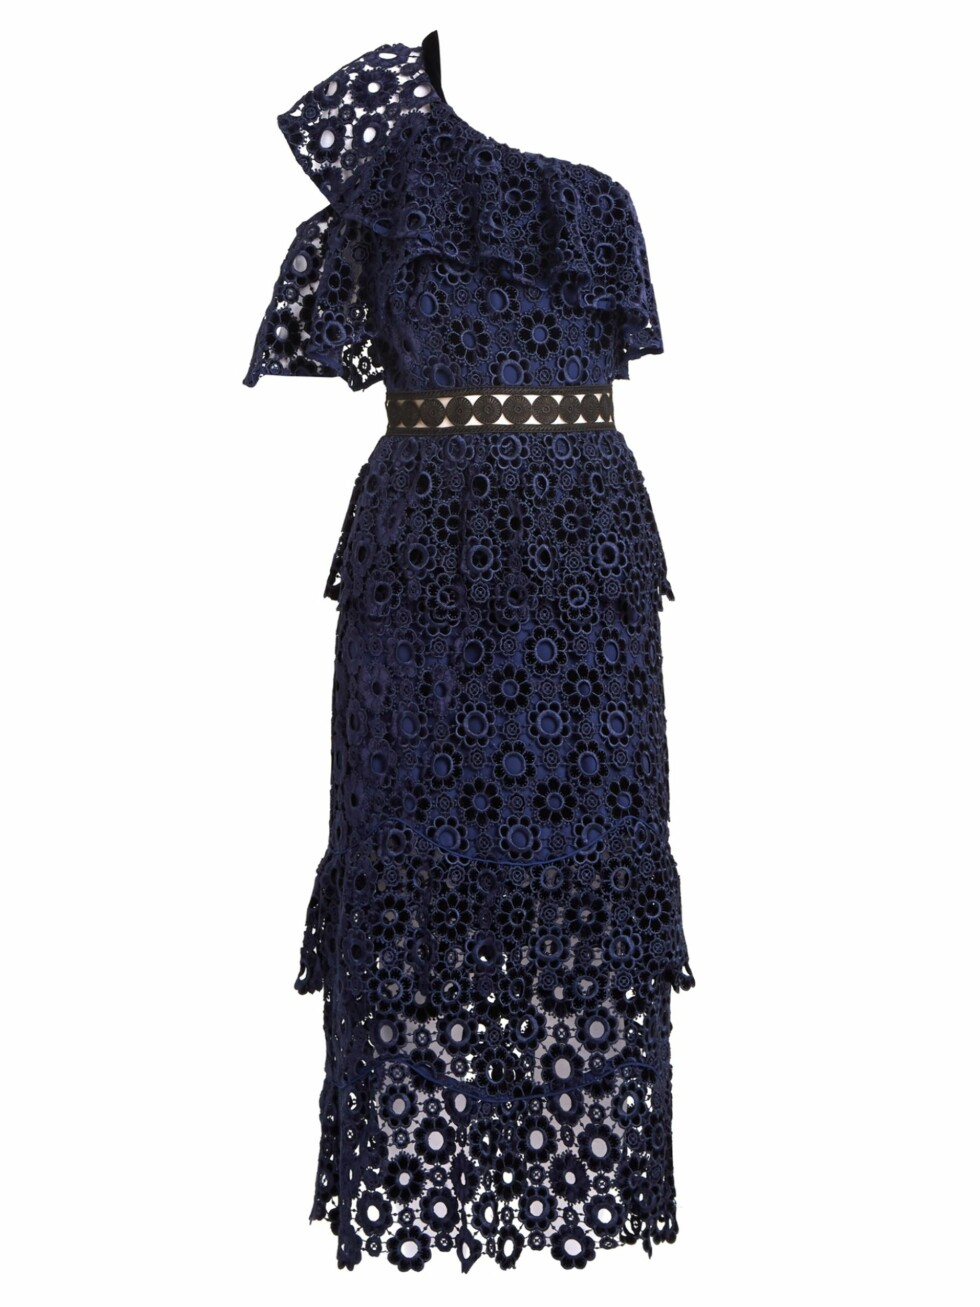 Kjole fra Self-Portrait |2715,-| https://www.matchesfashion.com/intl/products/Self-portrait-One-shoulder-tiered-floral-lace-midi-dress-1168307